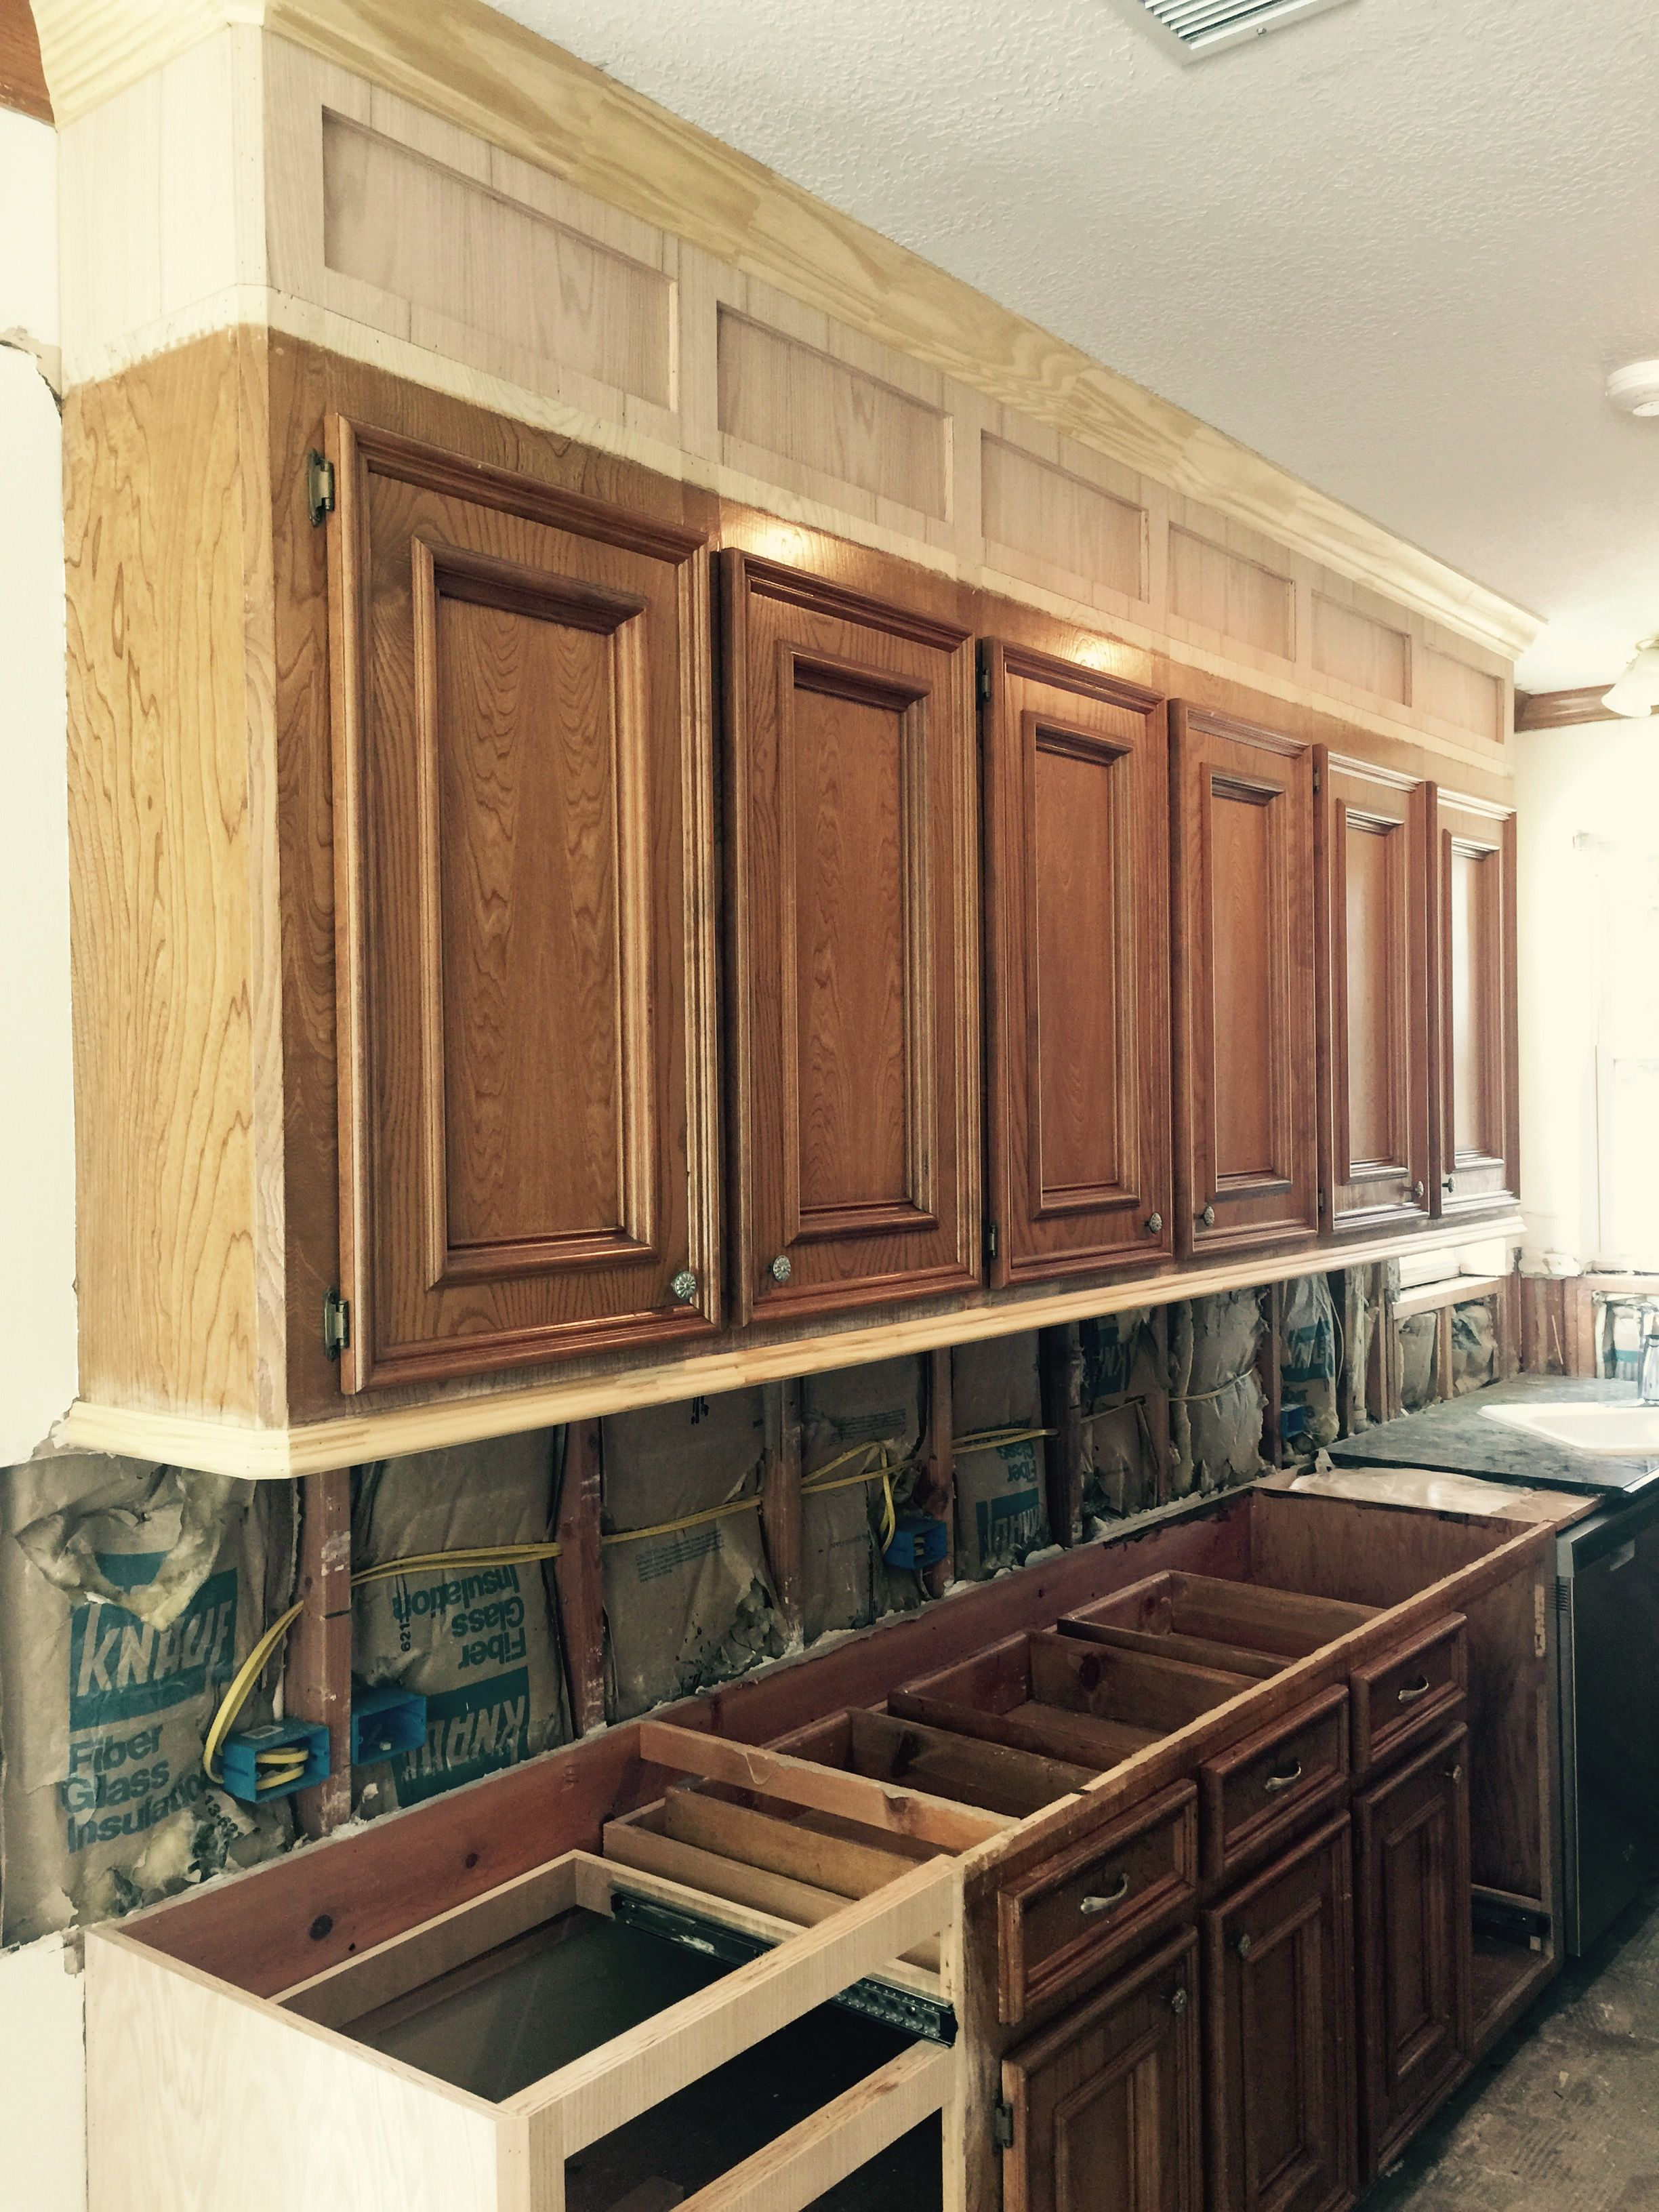 How To Make Ugly Cabinets Look Great! | Construction, Kitchens and ...